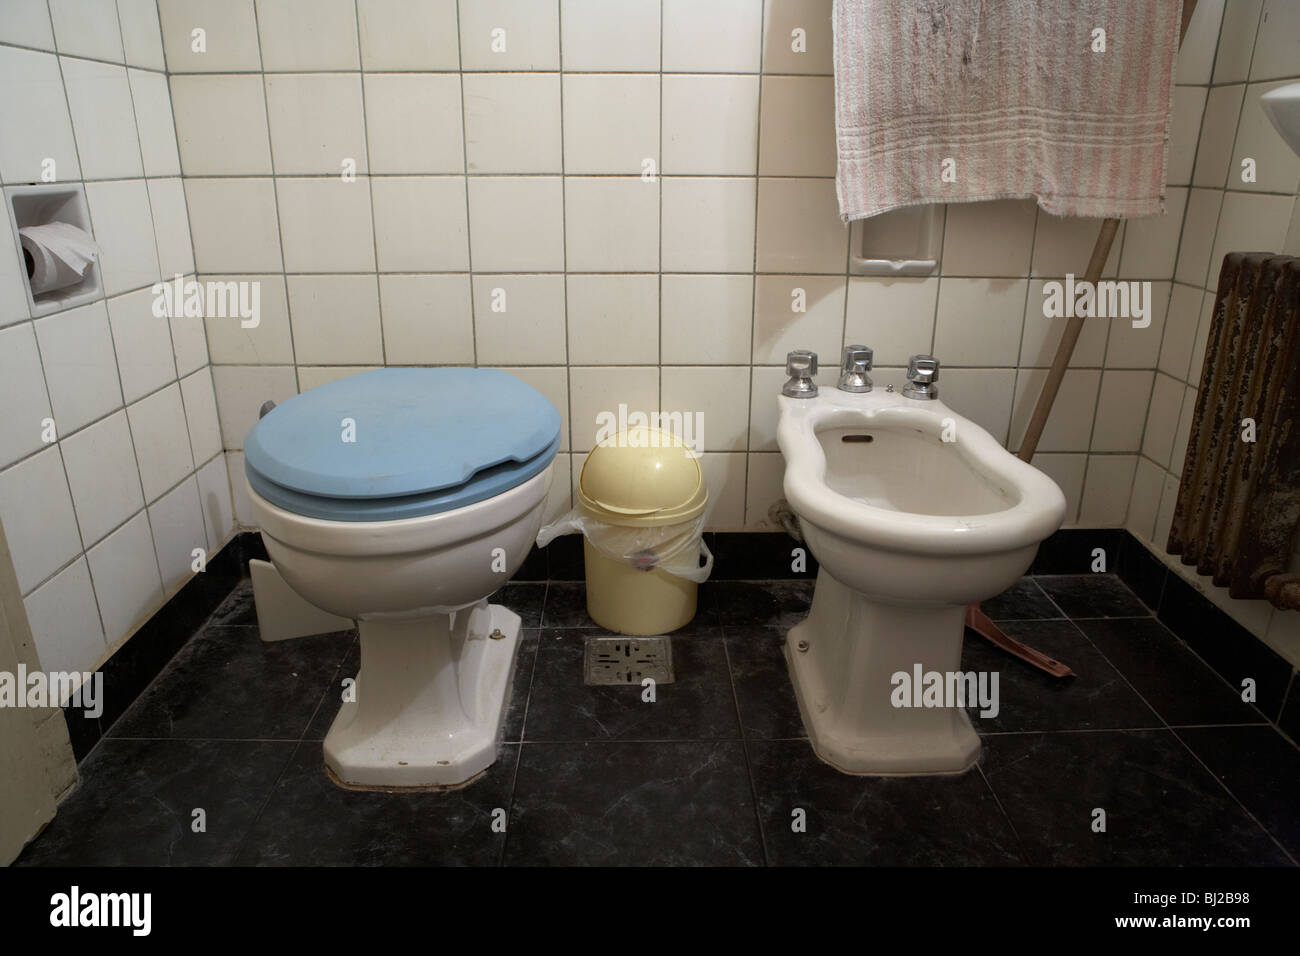 toilet with closed lid and bidet in a run down bathroom - Stock Image